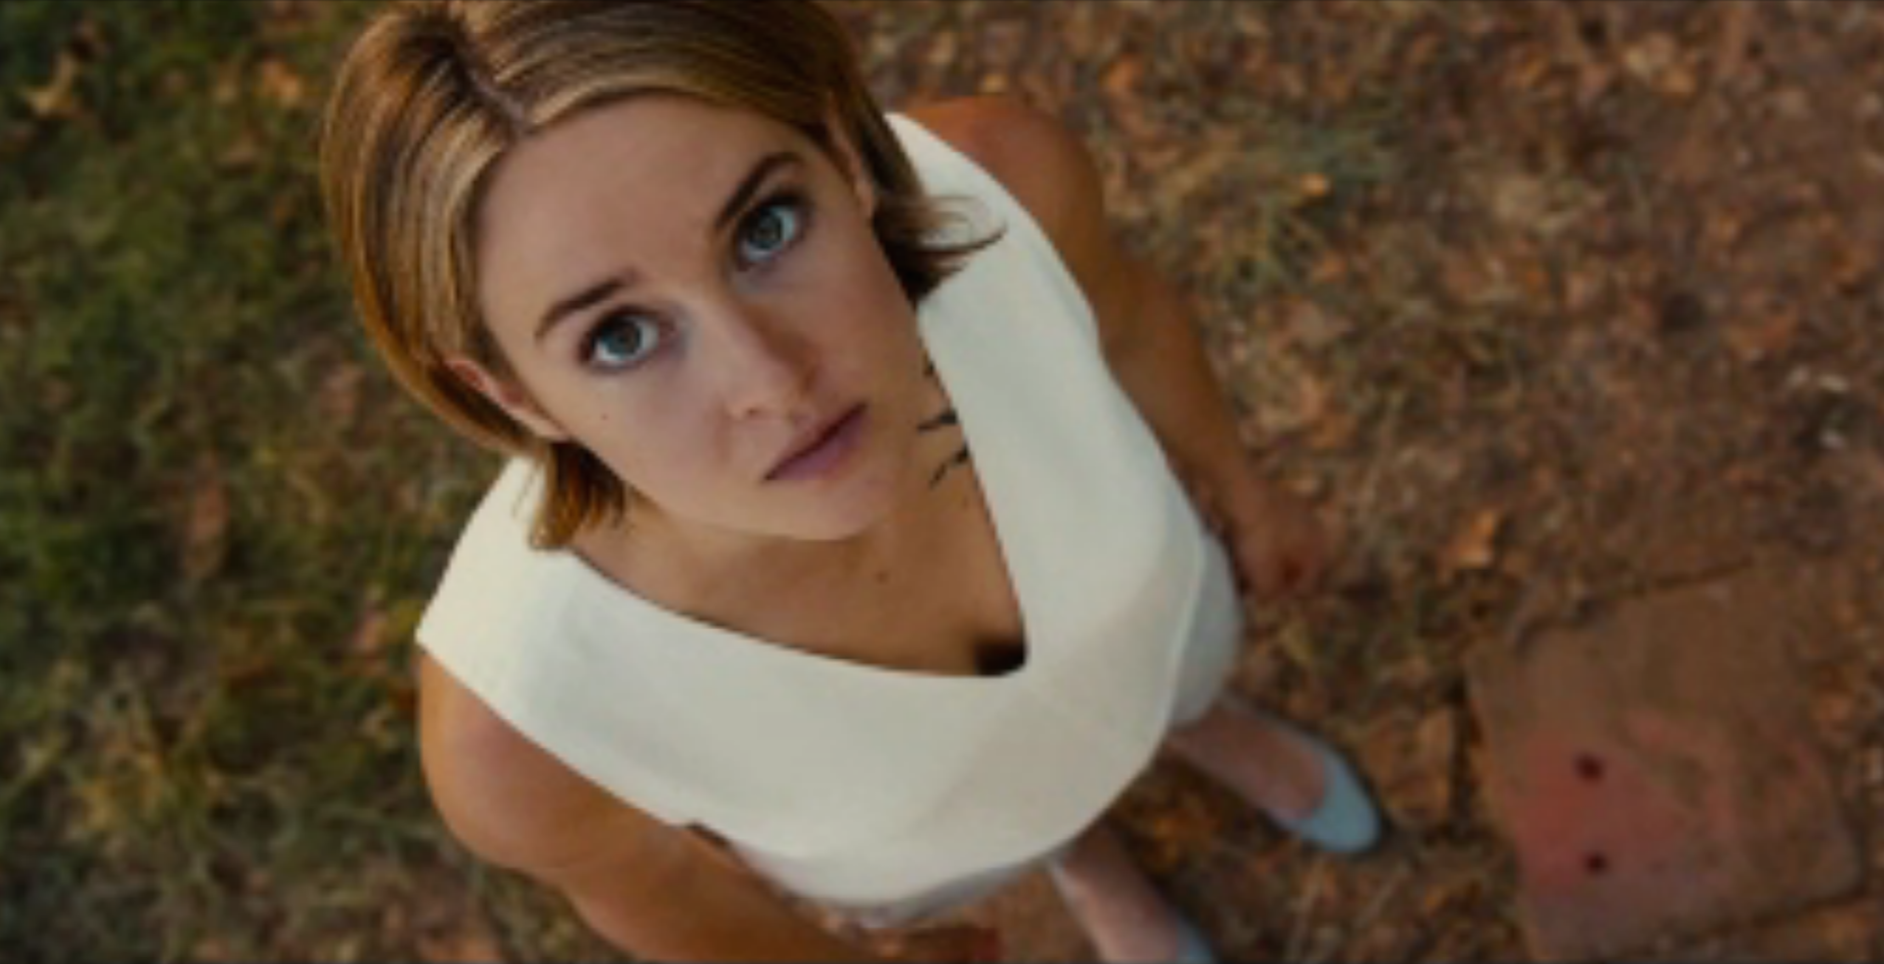 'Allegiant' review: Woodley back in post-apocalyptic Chicago wasteland